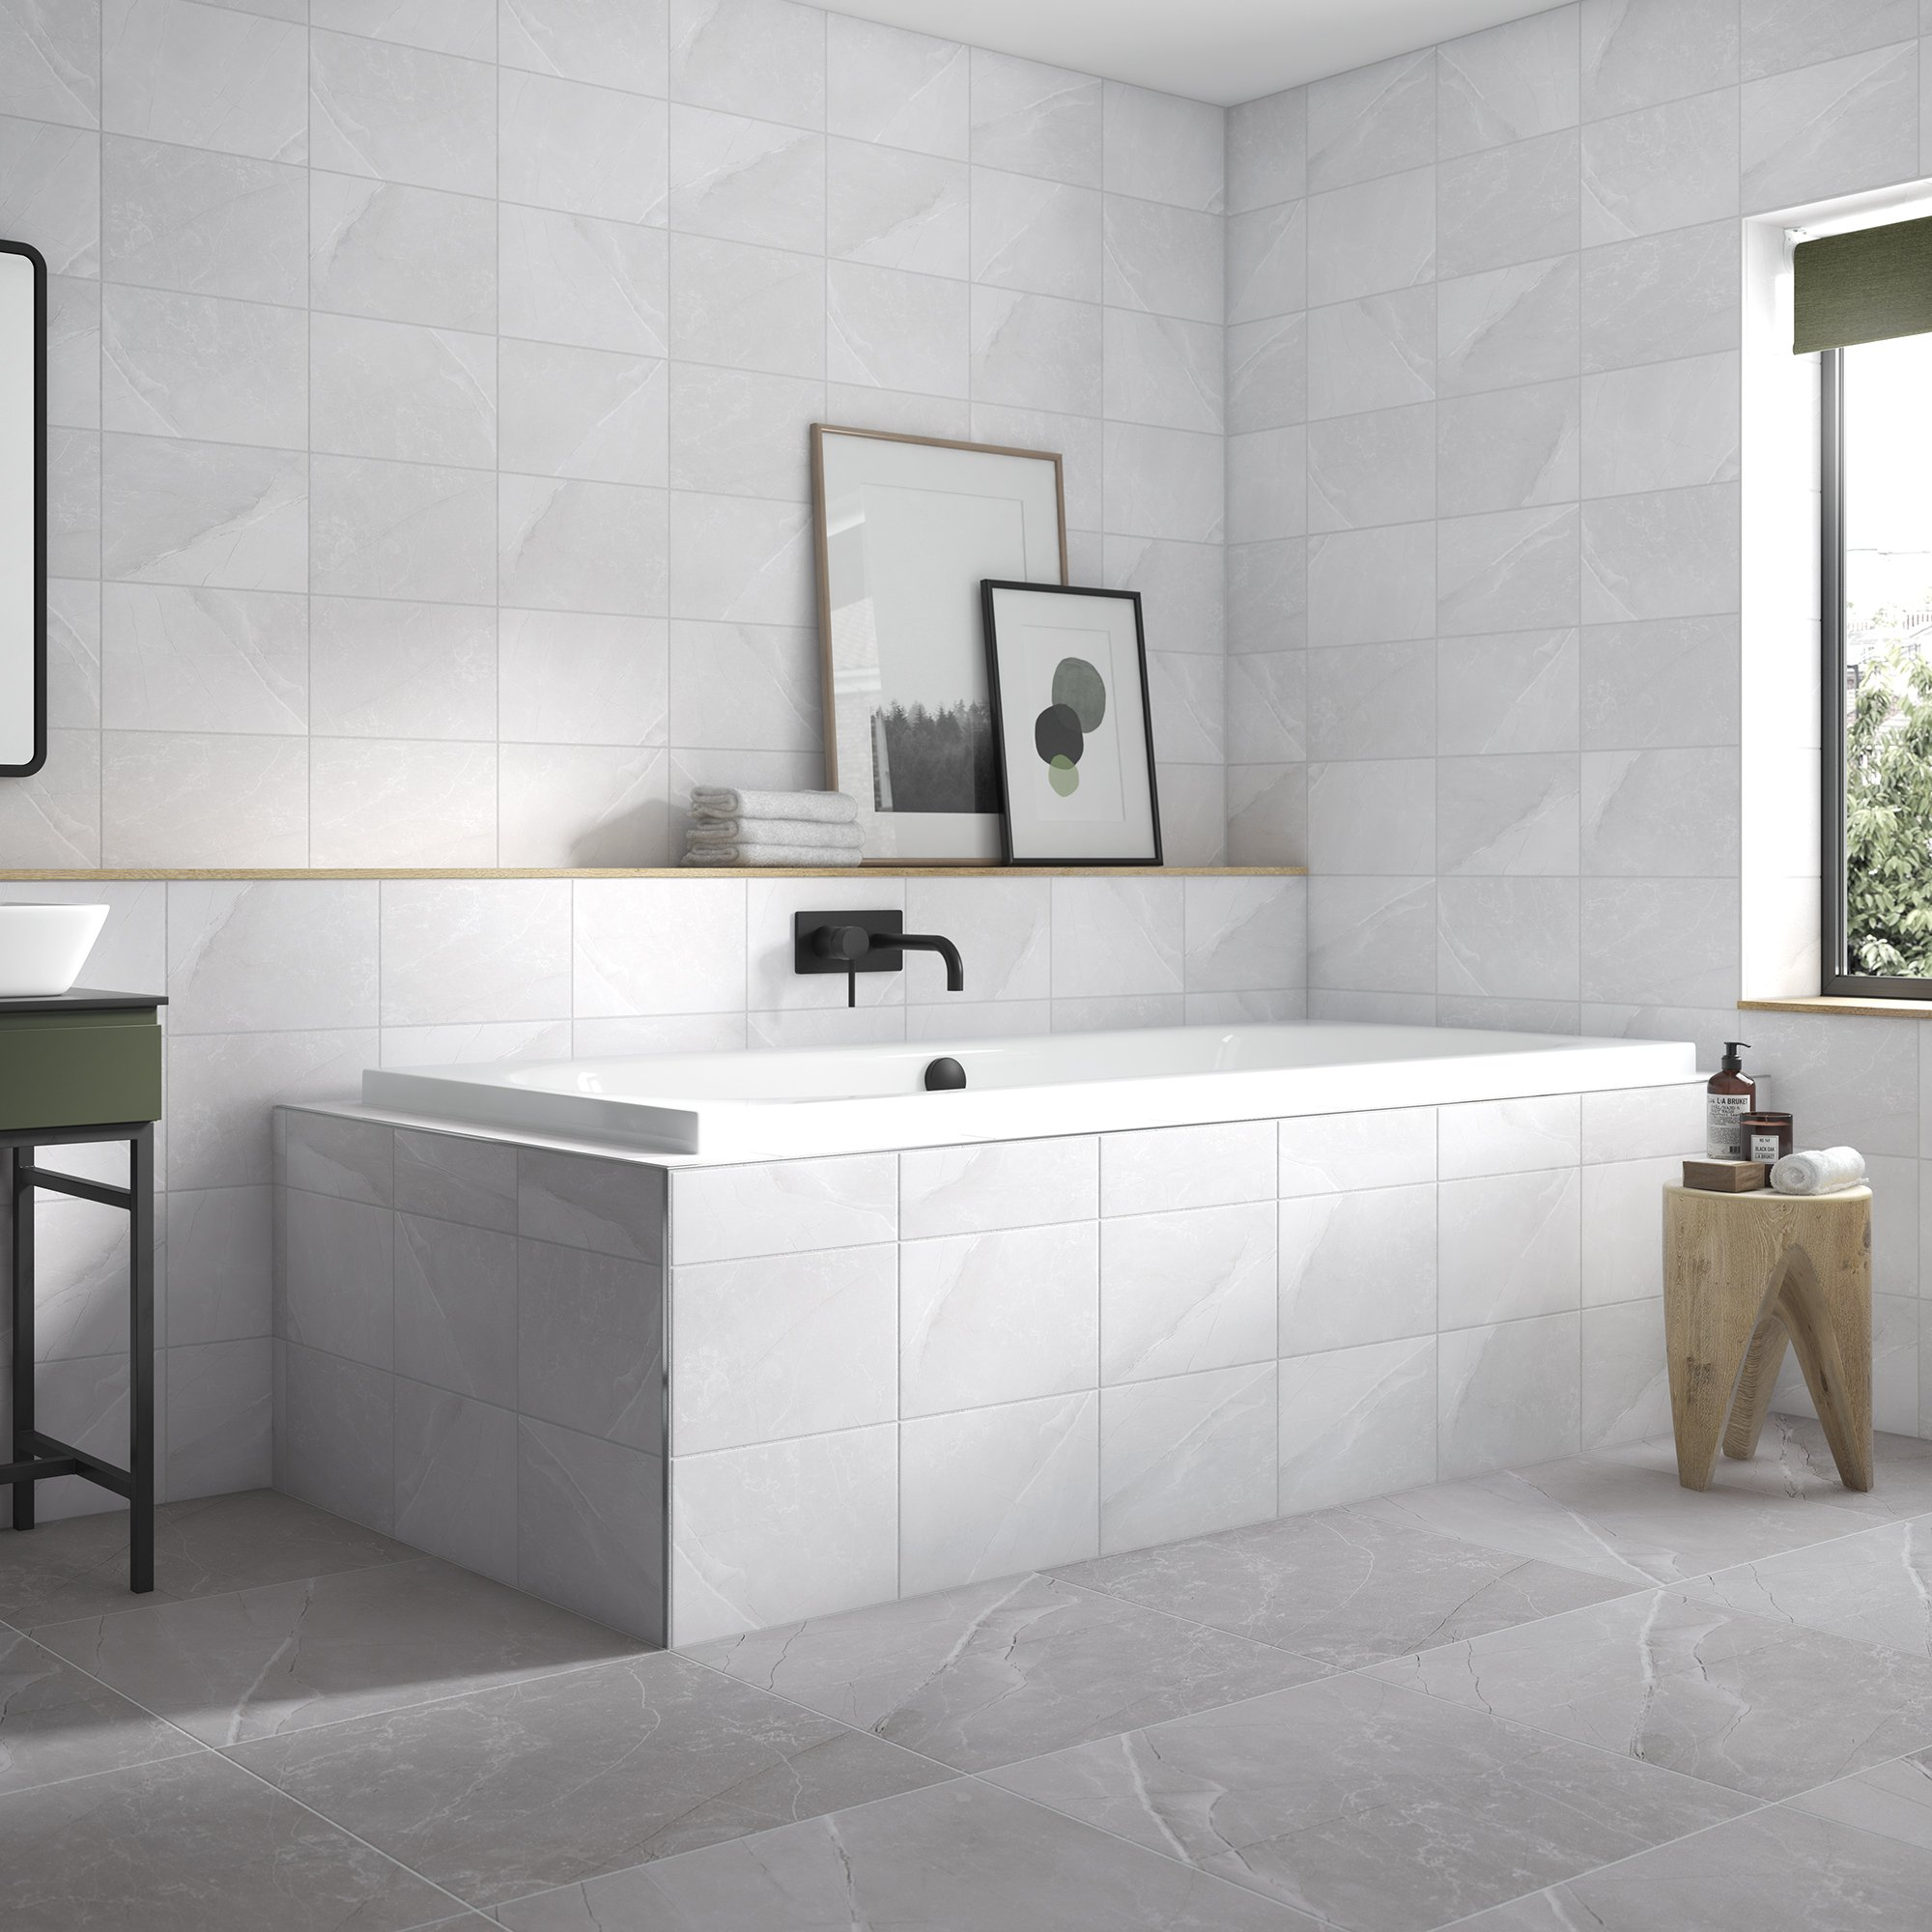 Melford Marble_MEL01A_Light Grey_Matt_300x200_MEL02N_Dark Grey_Natural_500x500_Bathroom [1].jpg